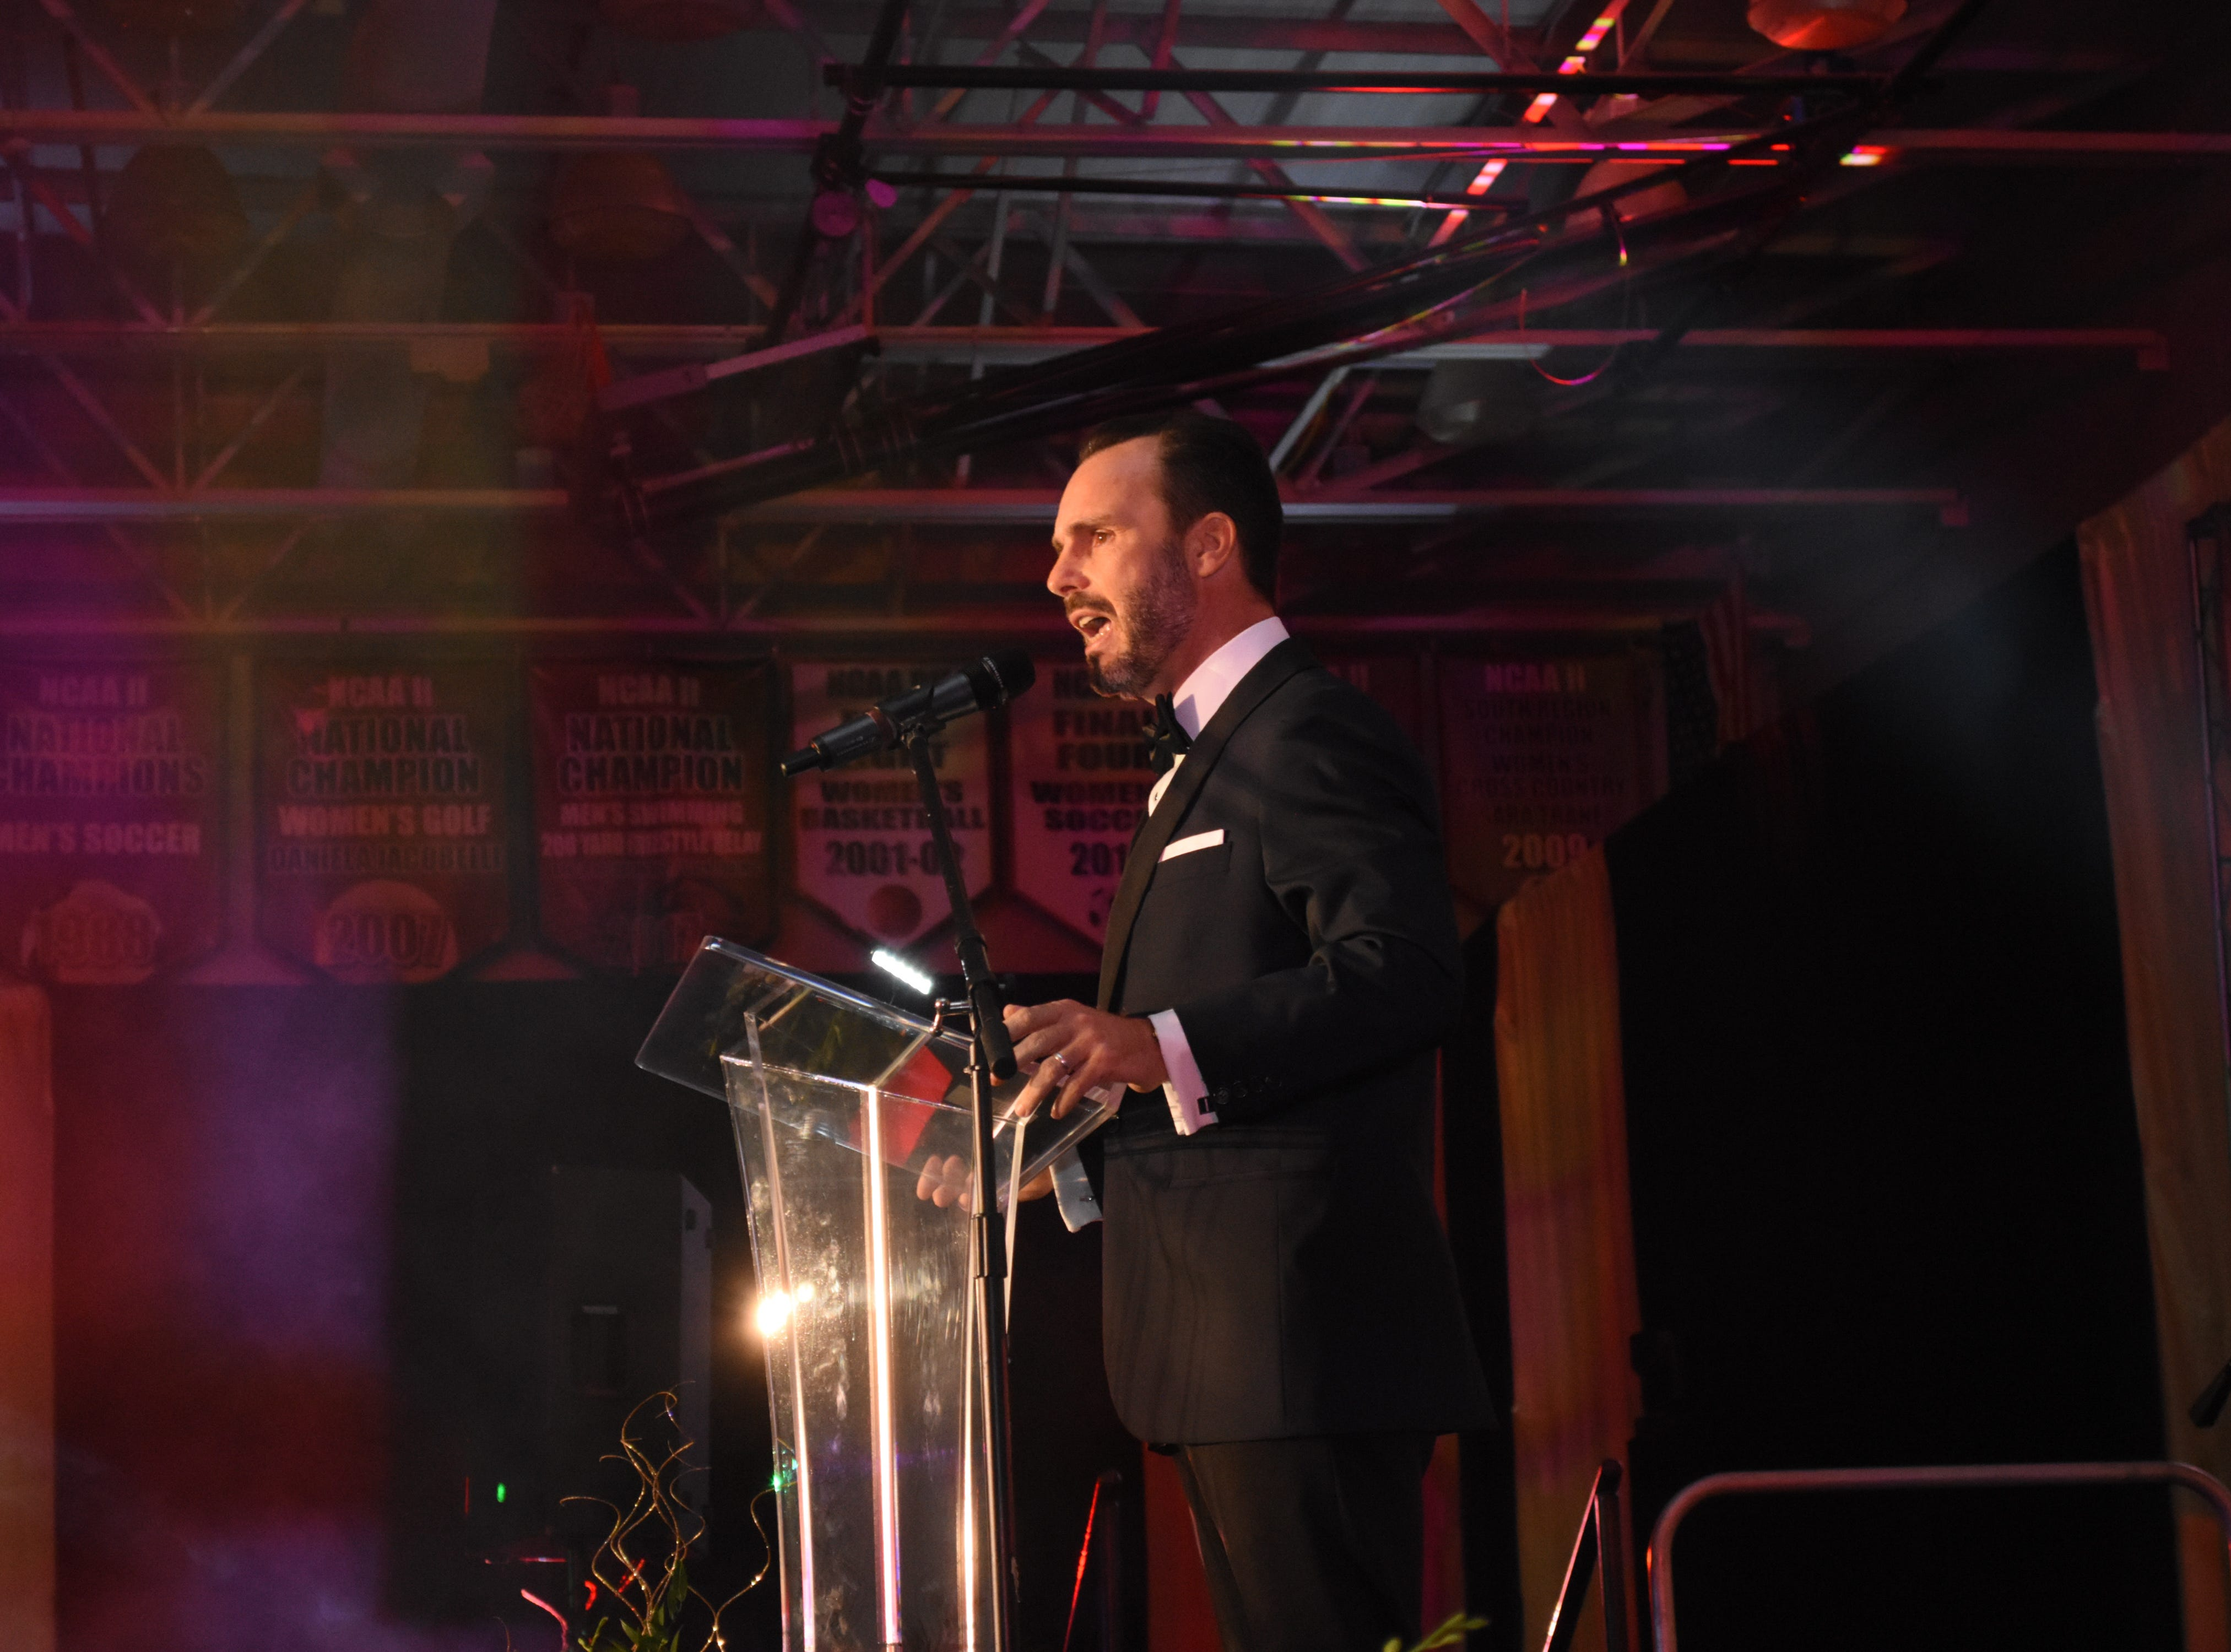 Florida Tech Executive Director of the Alumni Association and Master of Ceremonies Bino Campanini welcomes guests at Florida Tech's 60th Anniversary Homecoming Gala Oct. 13, 2018, at the Clemente Center.